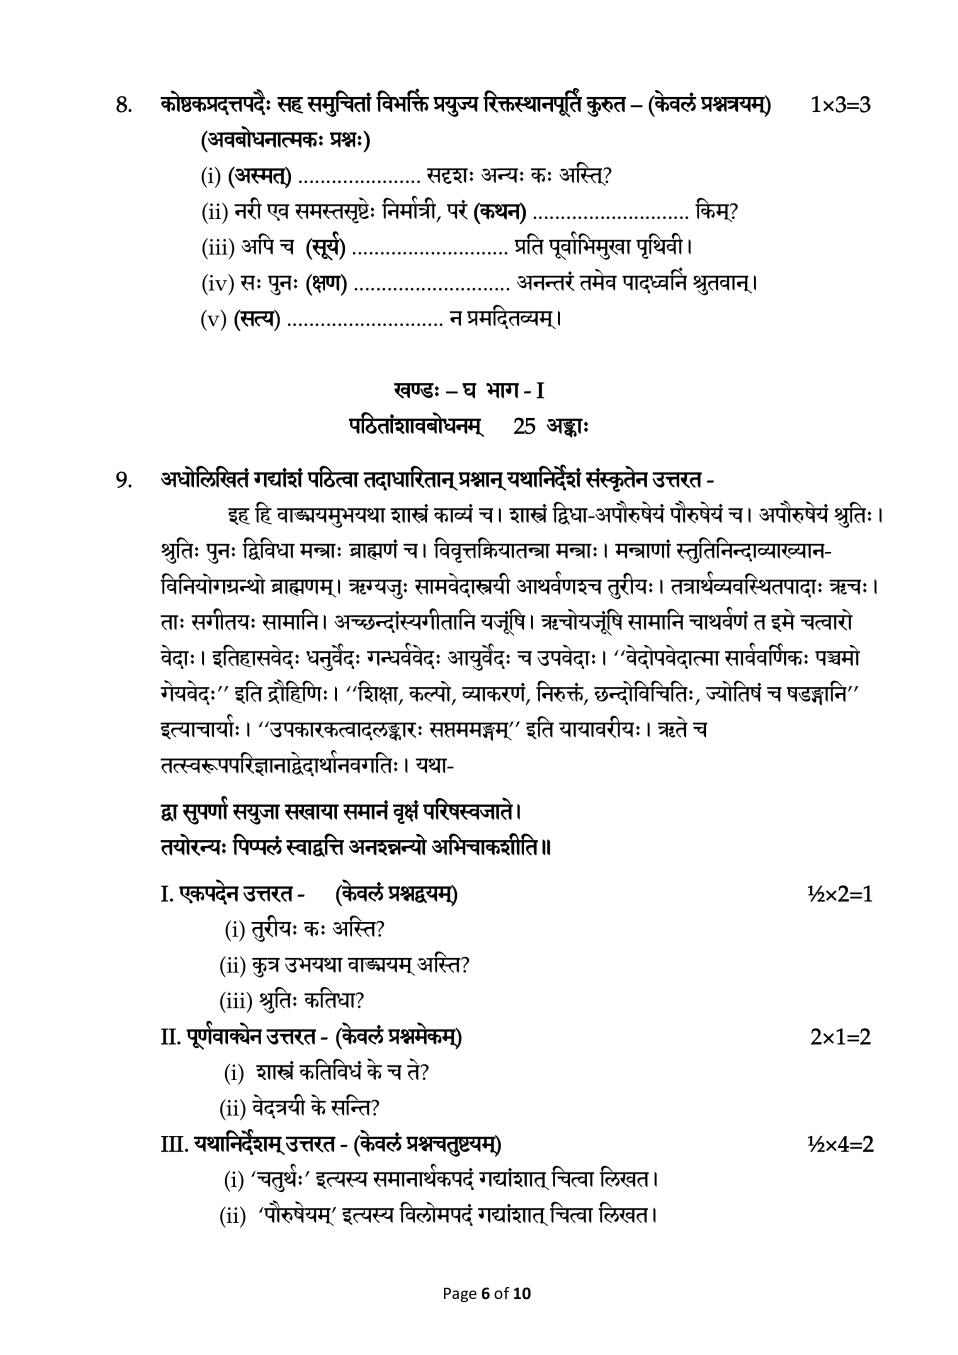 CBSE Sample Papers 2020 for Class 12 – Sanskrit (Core)